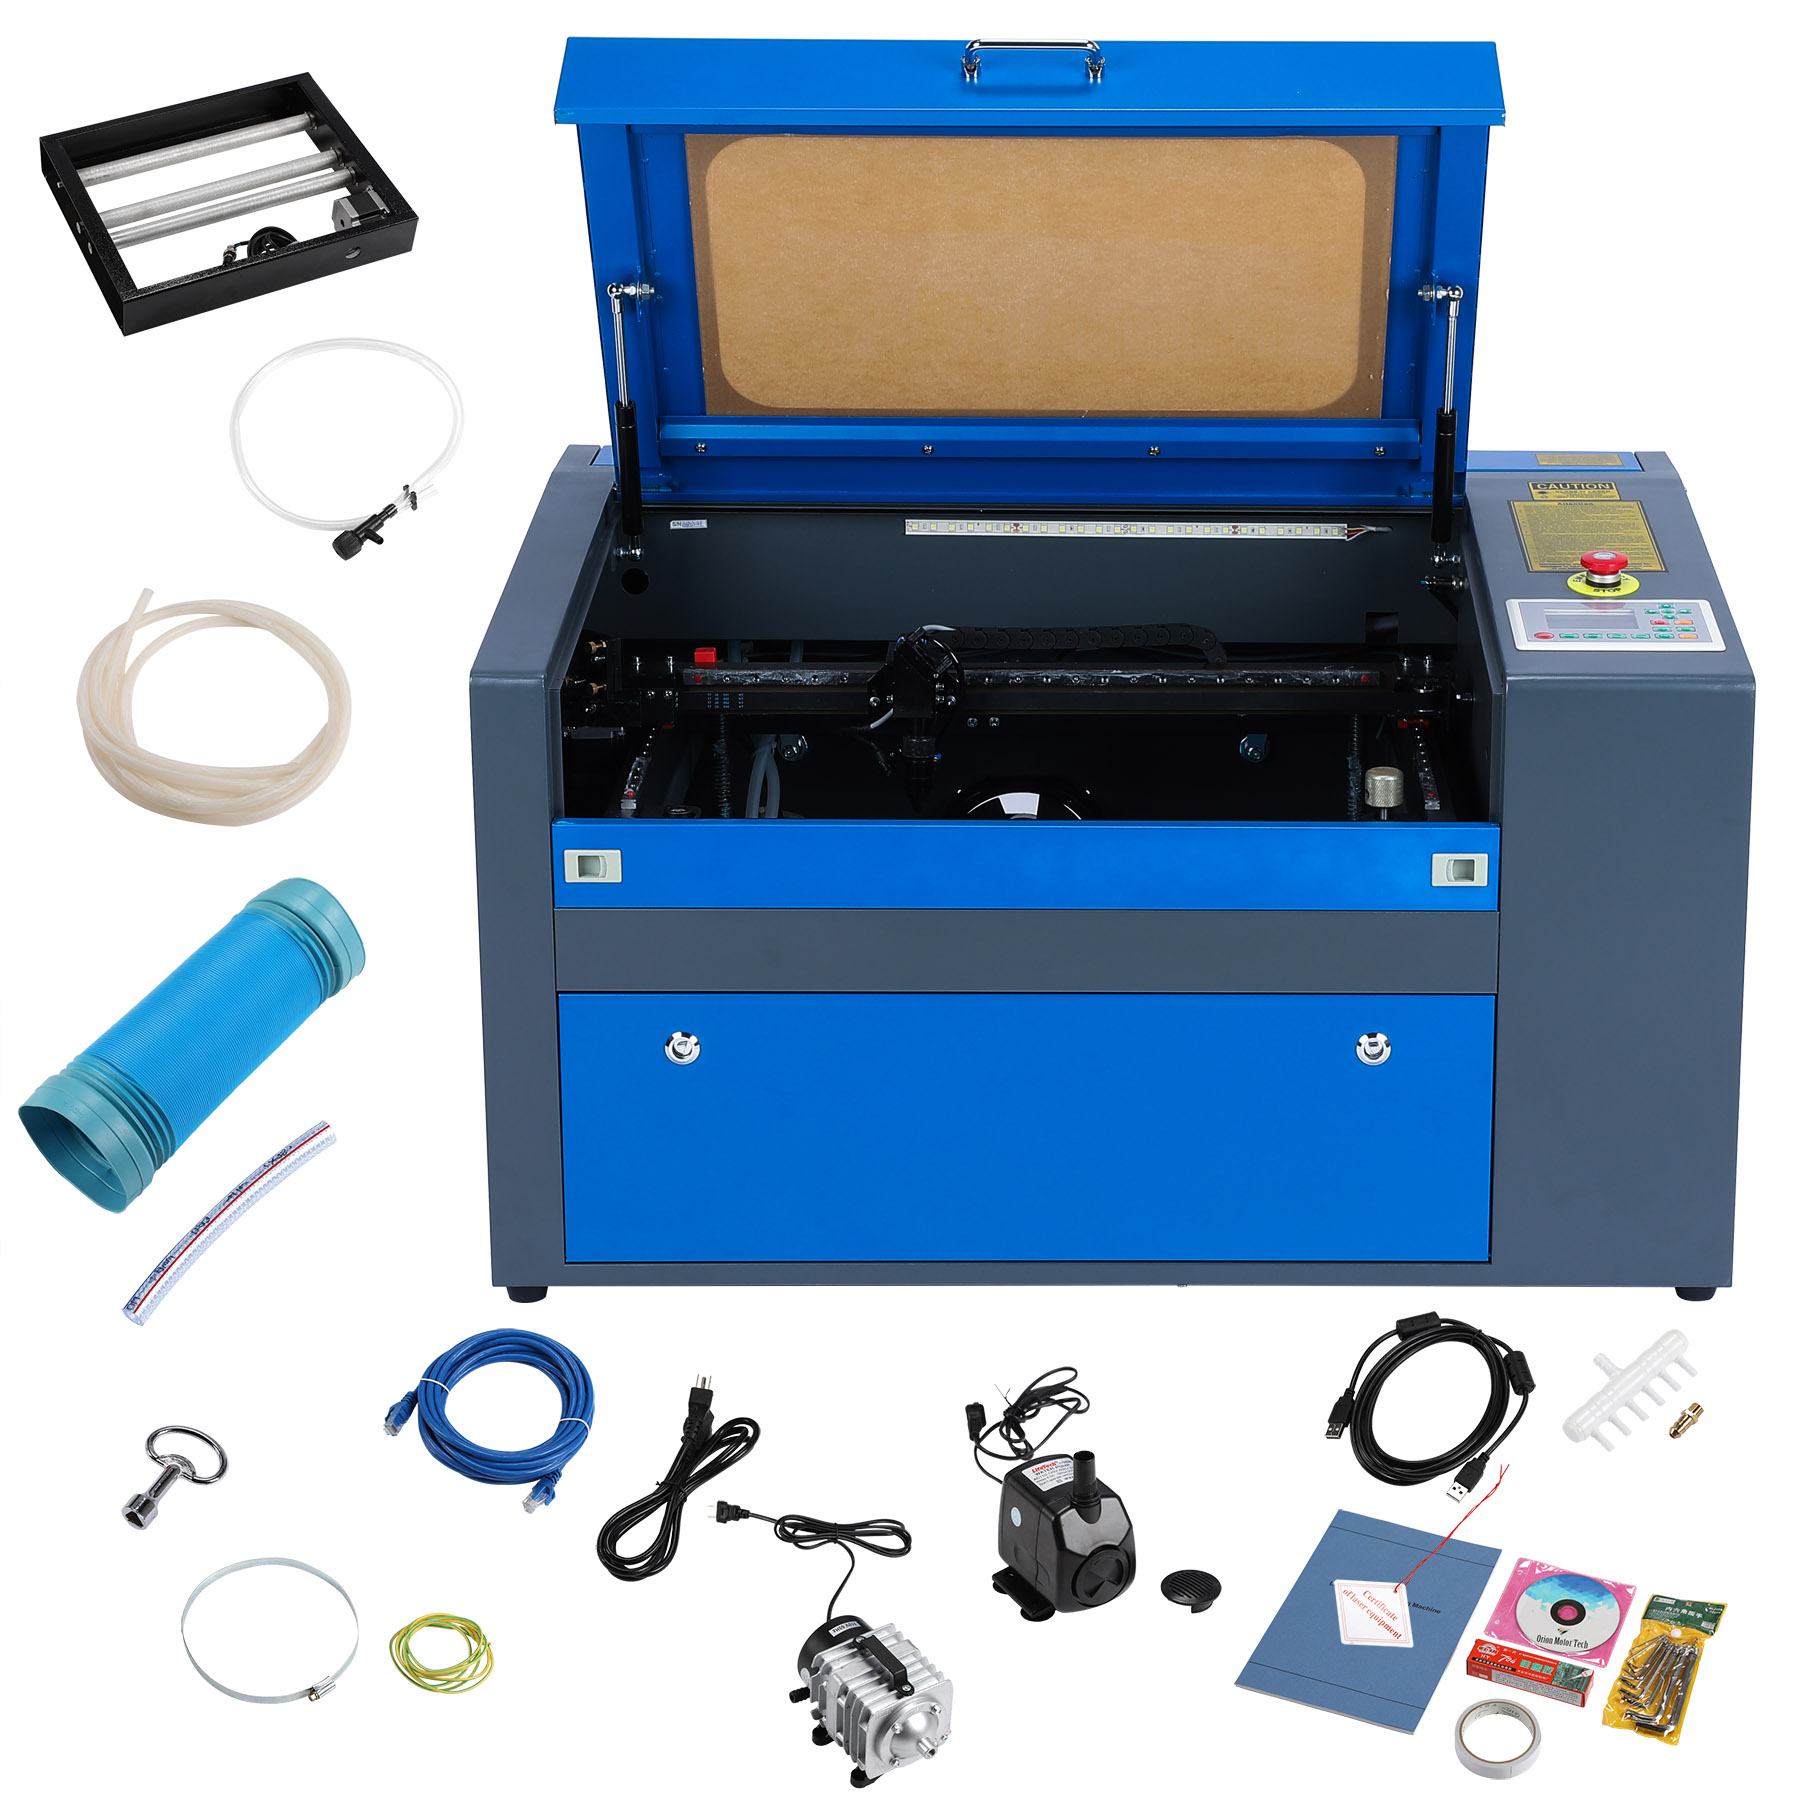 50w CO2 USB Laser Engraving Cutting Machine Engraver Cutter 500mm x 300mm